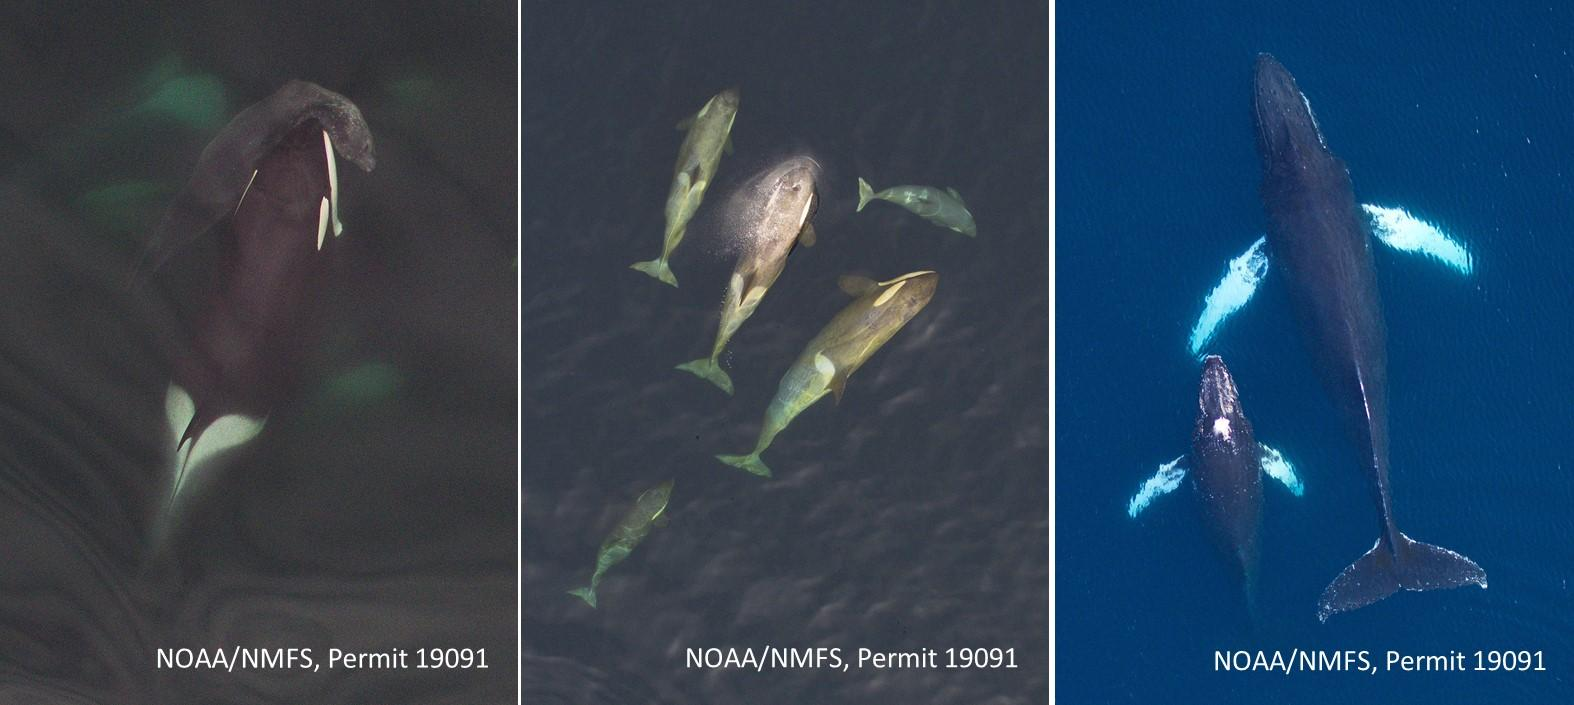 Aerial photographs of (left to right)  Type A killer whales, Type B killer whales  and humpback whales around the Antarctic Peninsula. Note an elephant seal in the mouth of a Type A killer whale. Images obtained from >30m (100ft) above the whales using a small unmanned hexacopter. These vertical images are being used to measure size and monitor body condition of these top predators, to assess nutritional health of the marine food web in this rapidly-changing ecosystem.